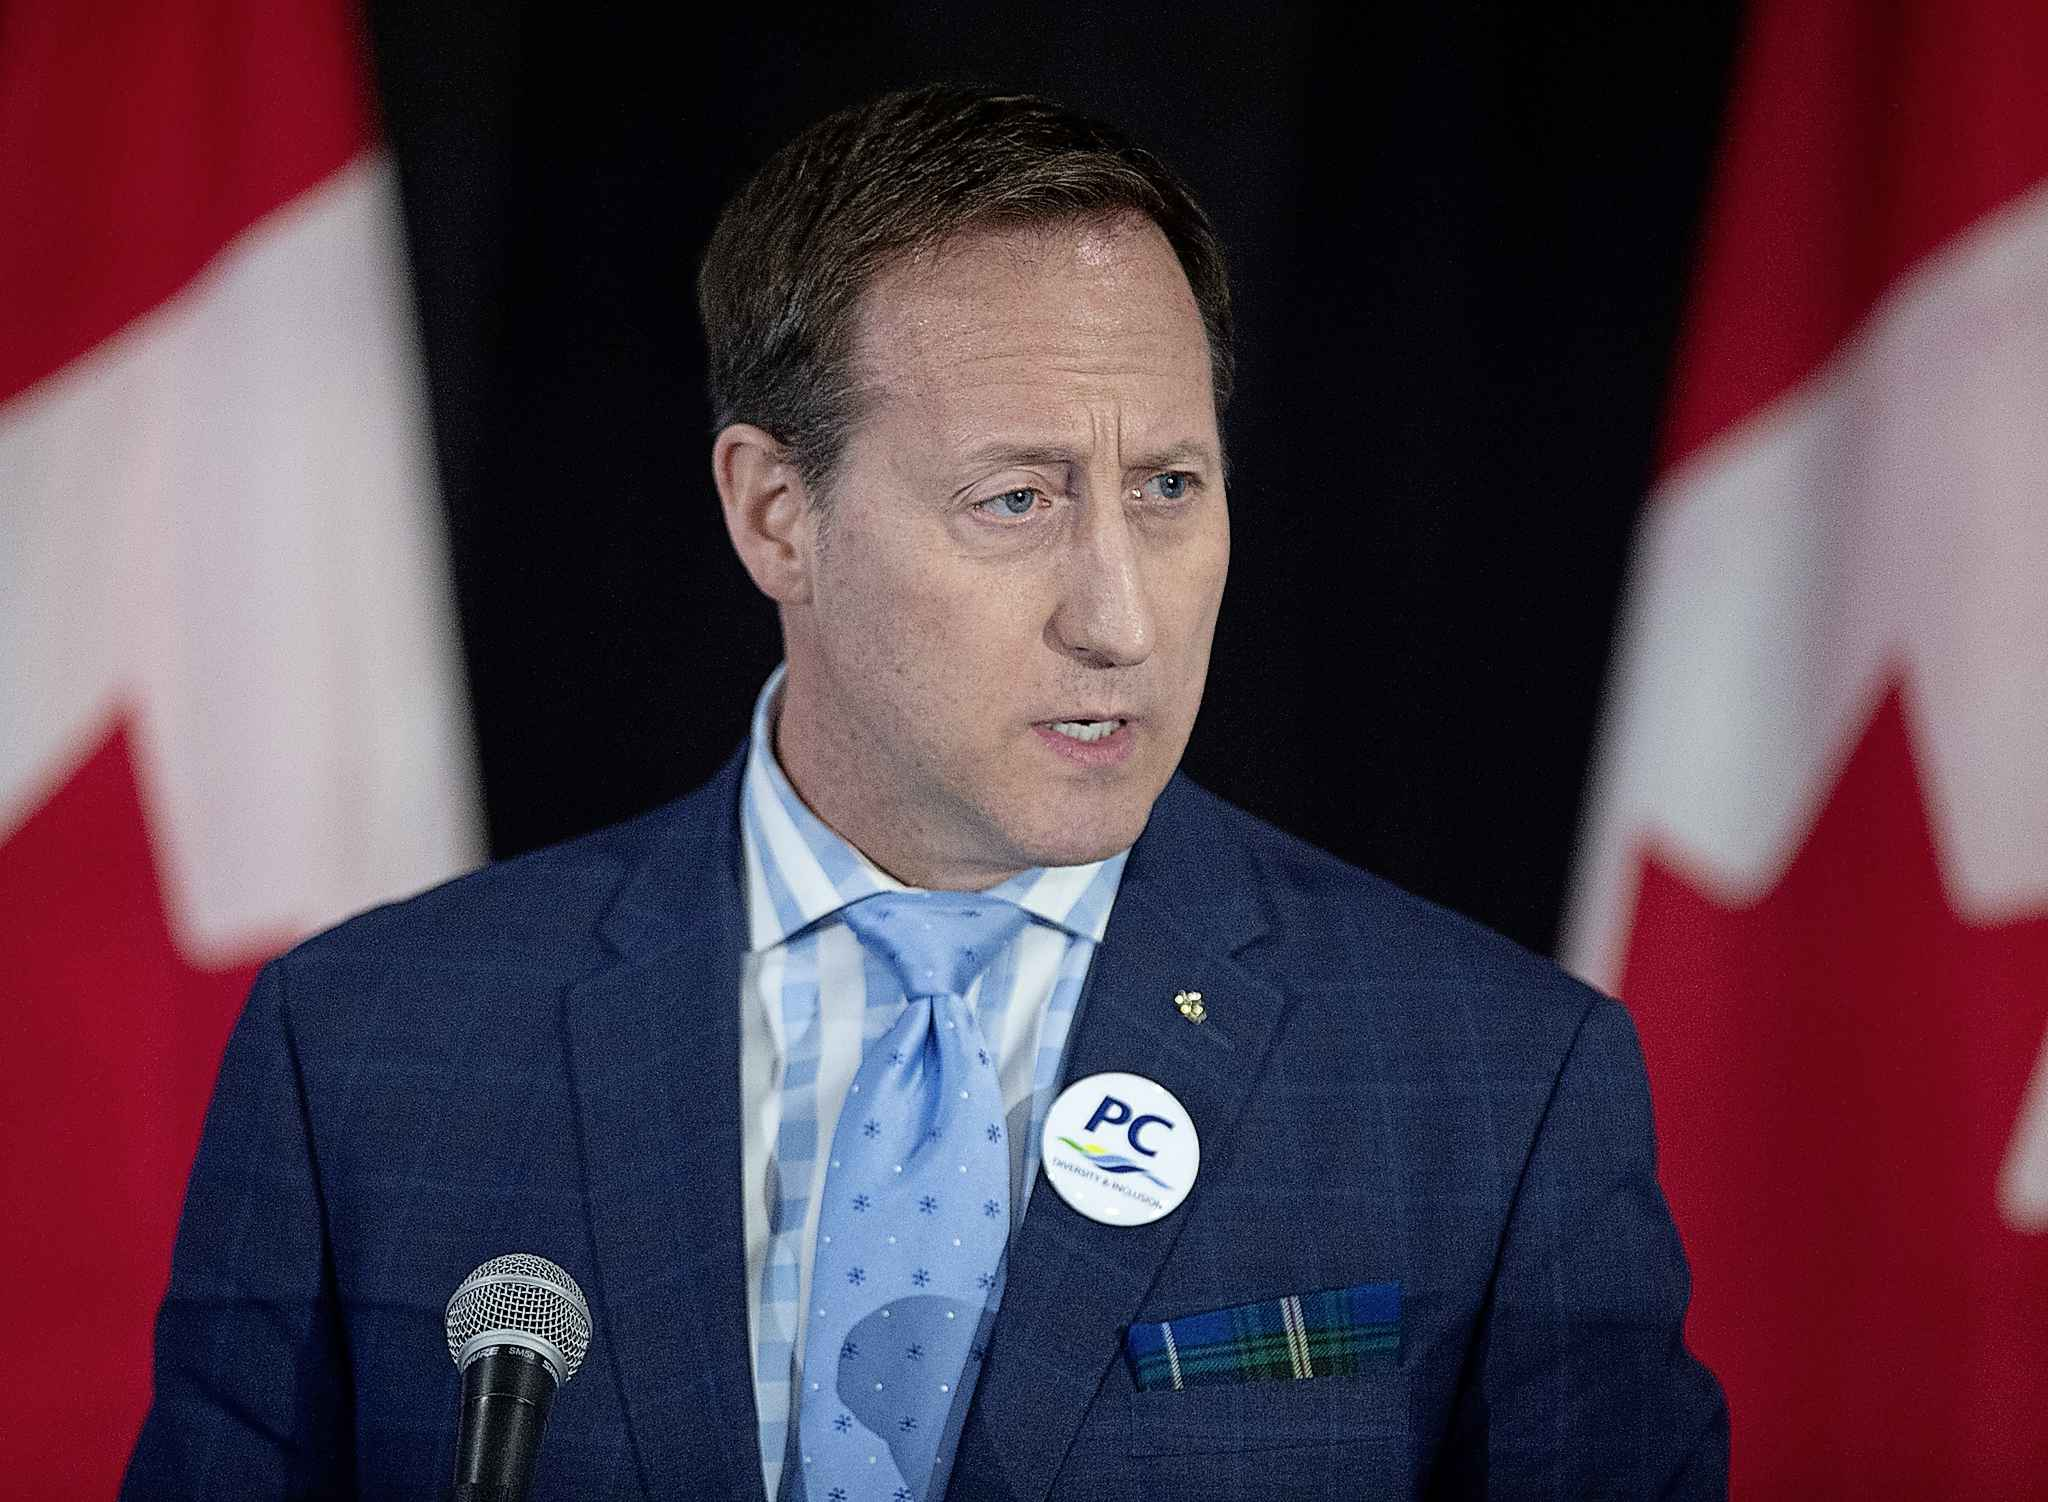 Peter MacKay addresses the crowd at a federal Conservative leadership forum in Halifax, N.S. (Andrew Vaughan / The Canadian Press files)